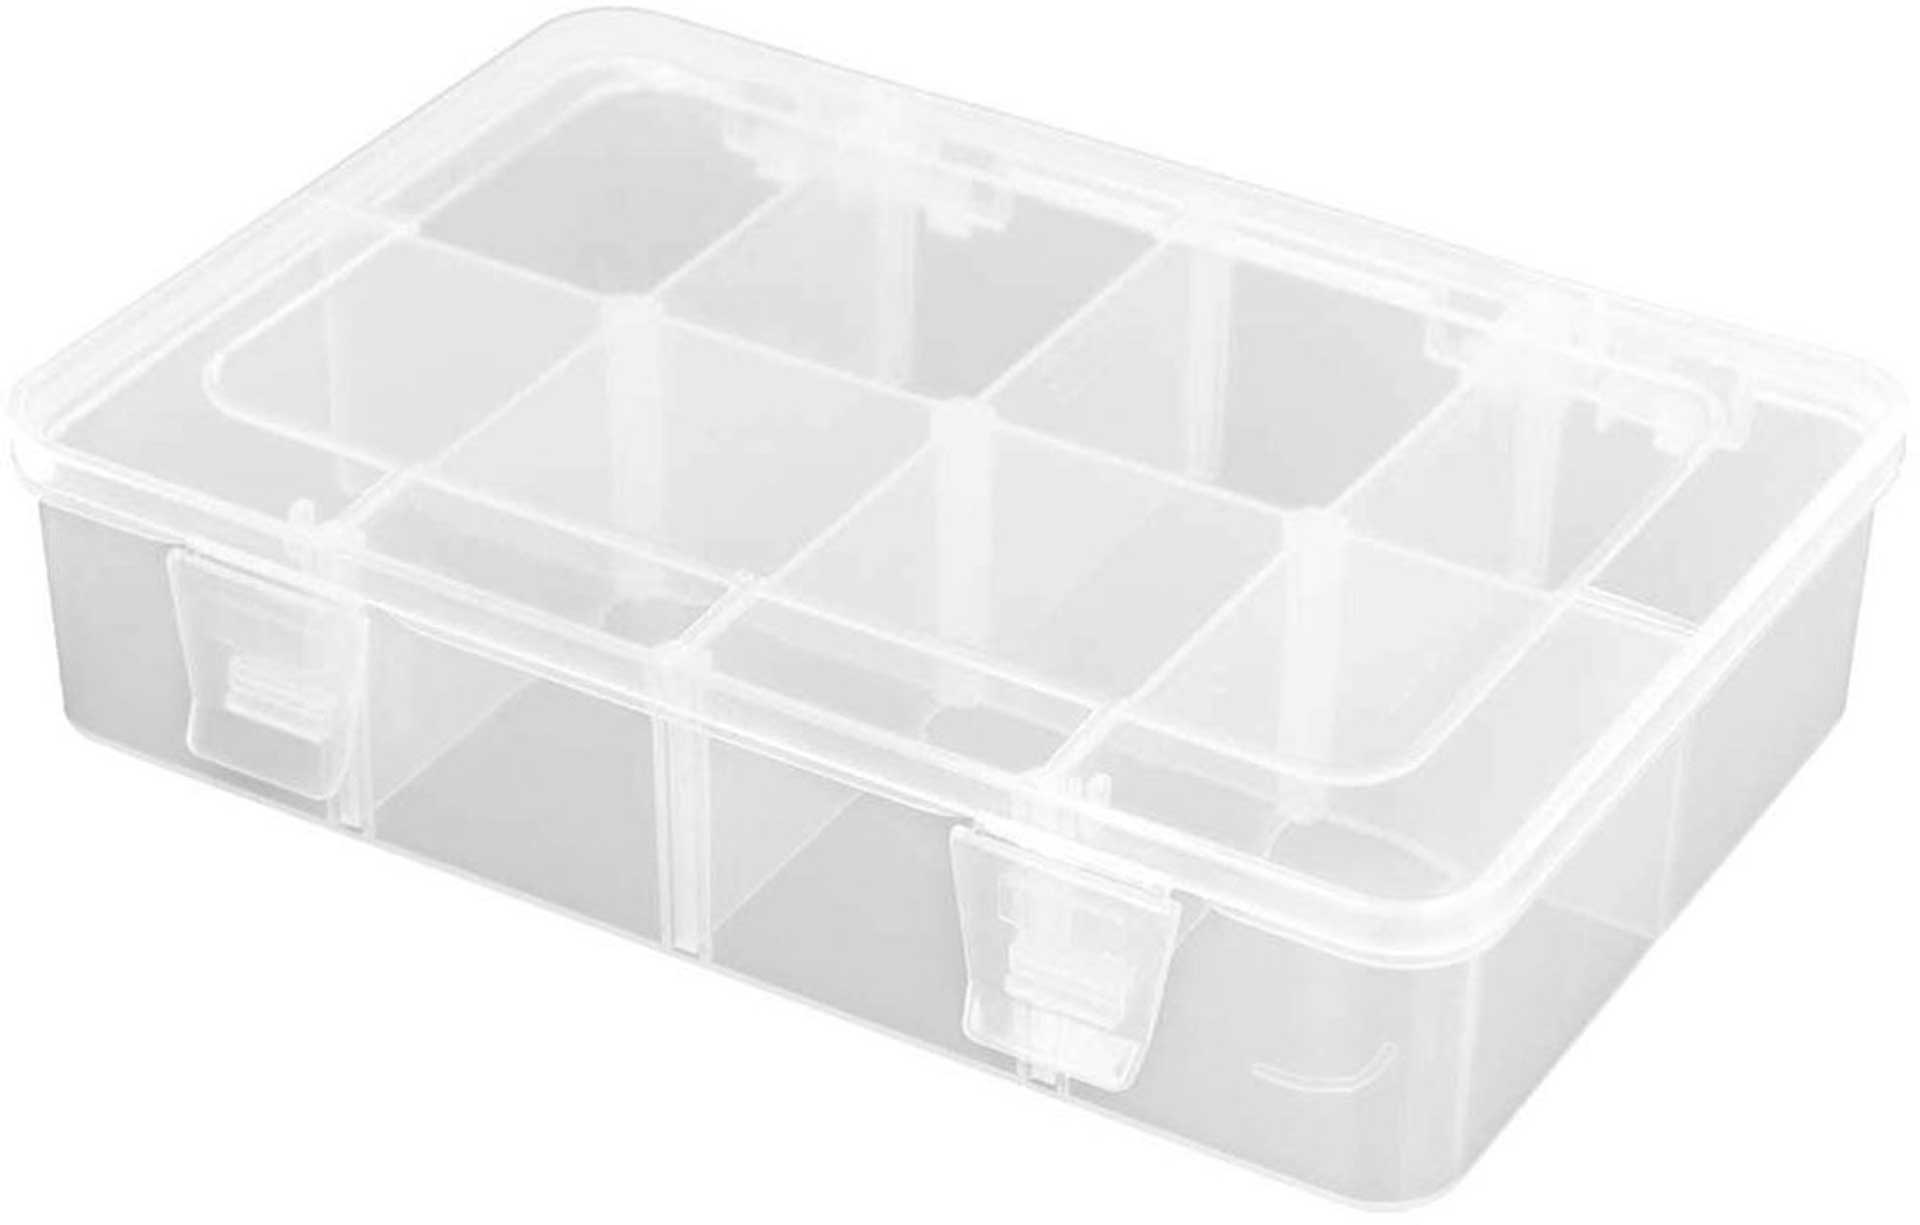 ROBITRONIC ASSORTMENT BOX 8 COMPARTMENTS 187X126X43MM VARIABLE